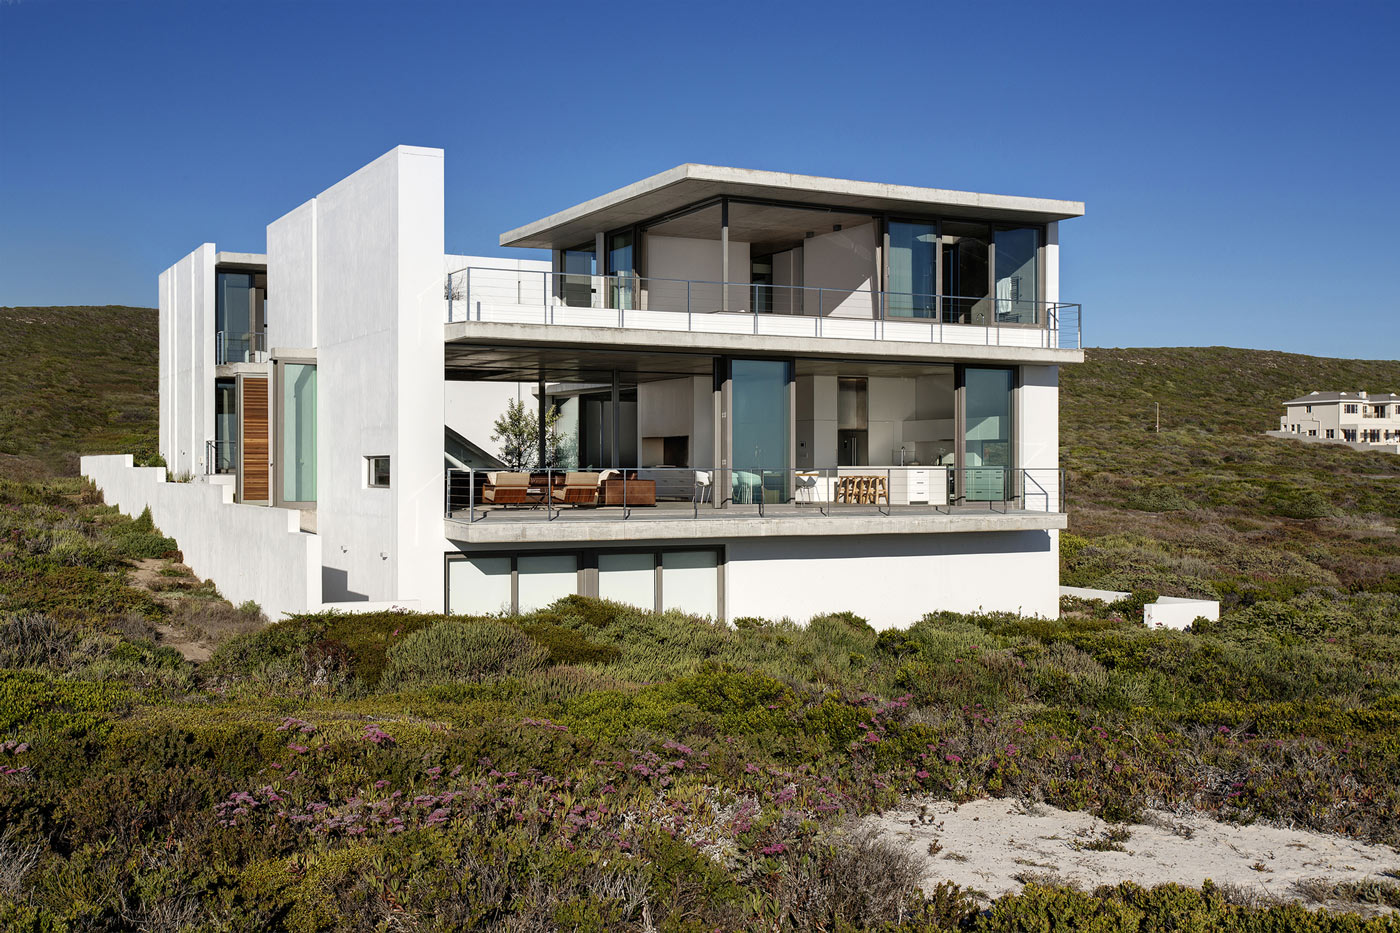 Terrace, Holiday Home in Yzerfontein, South Africa